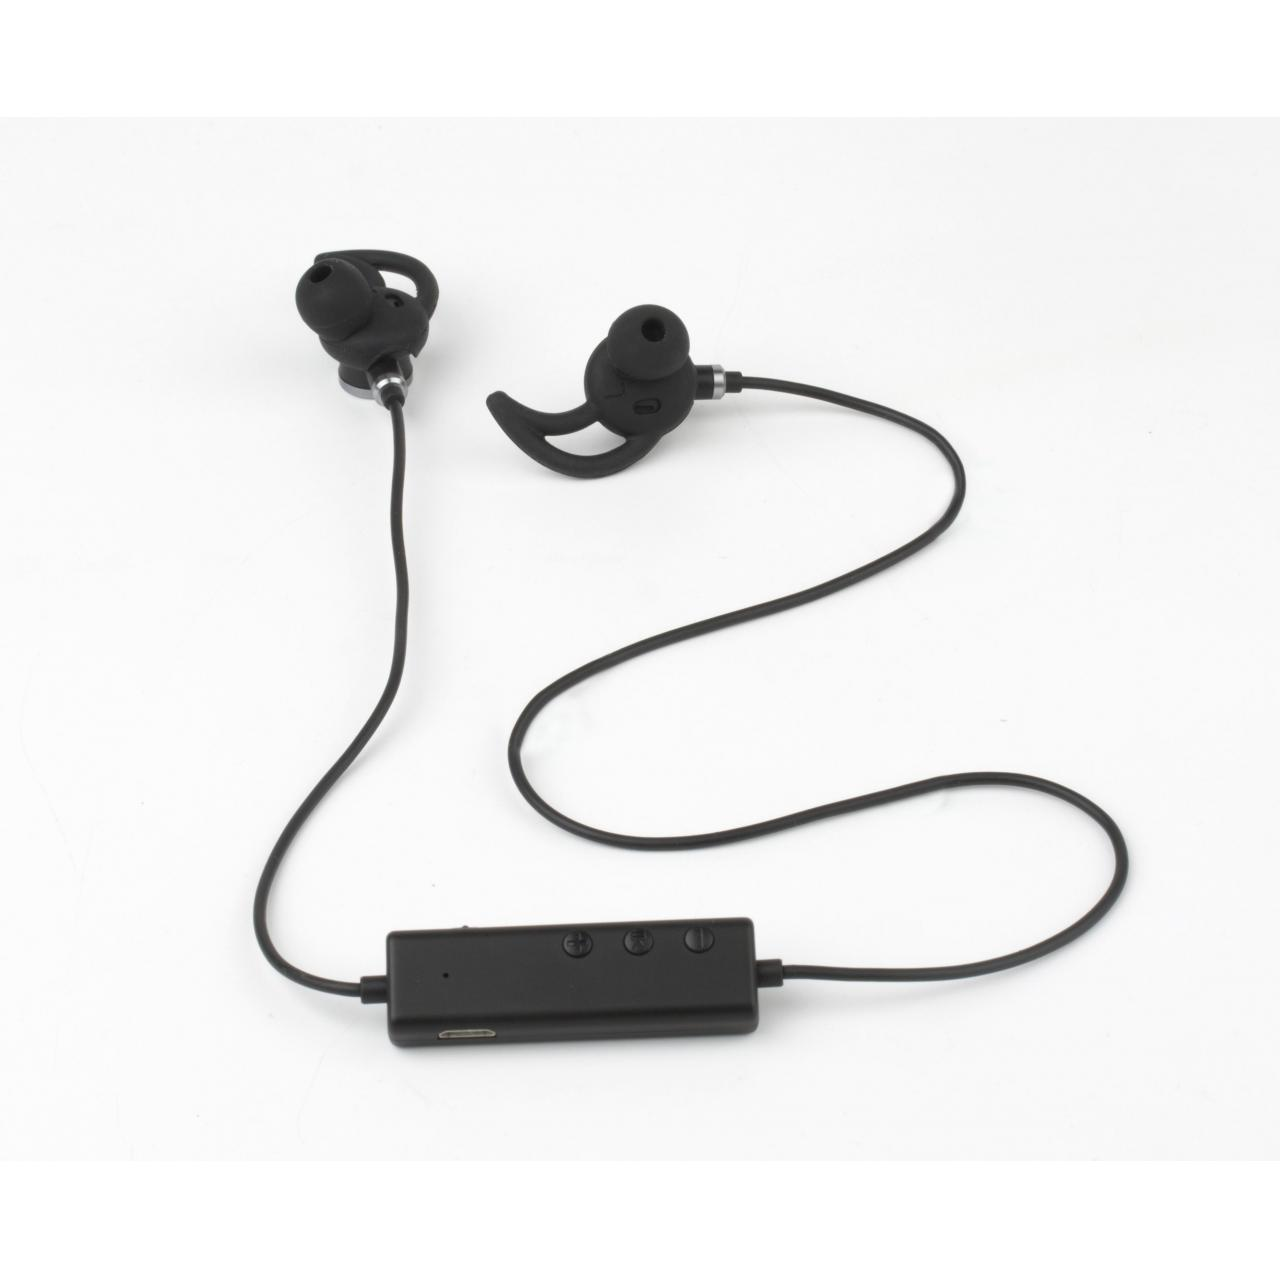 China ANC Earphone Model: ZSE4 Active Noise Cancelling Earphone on sale